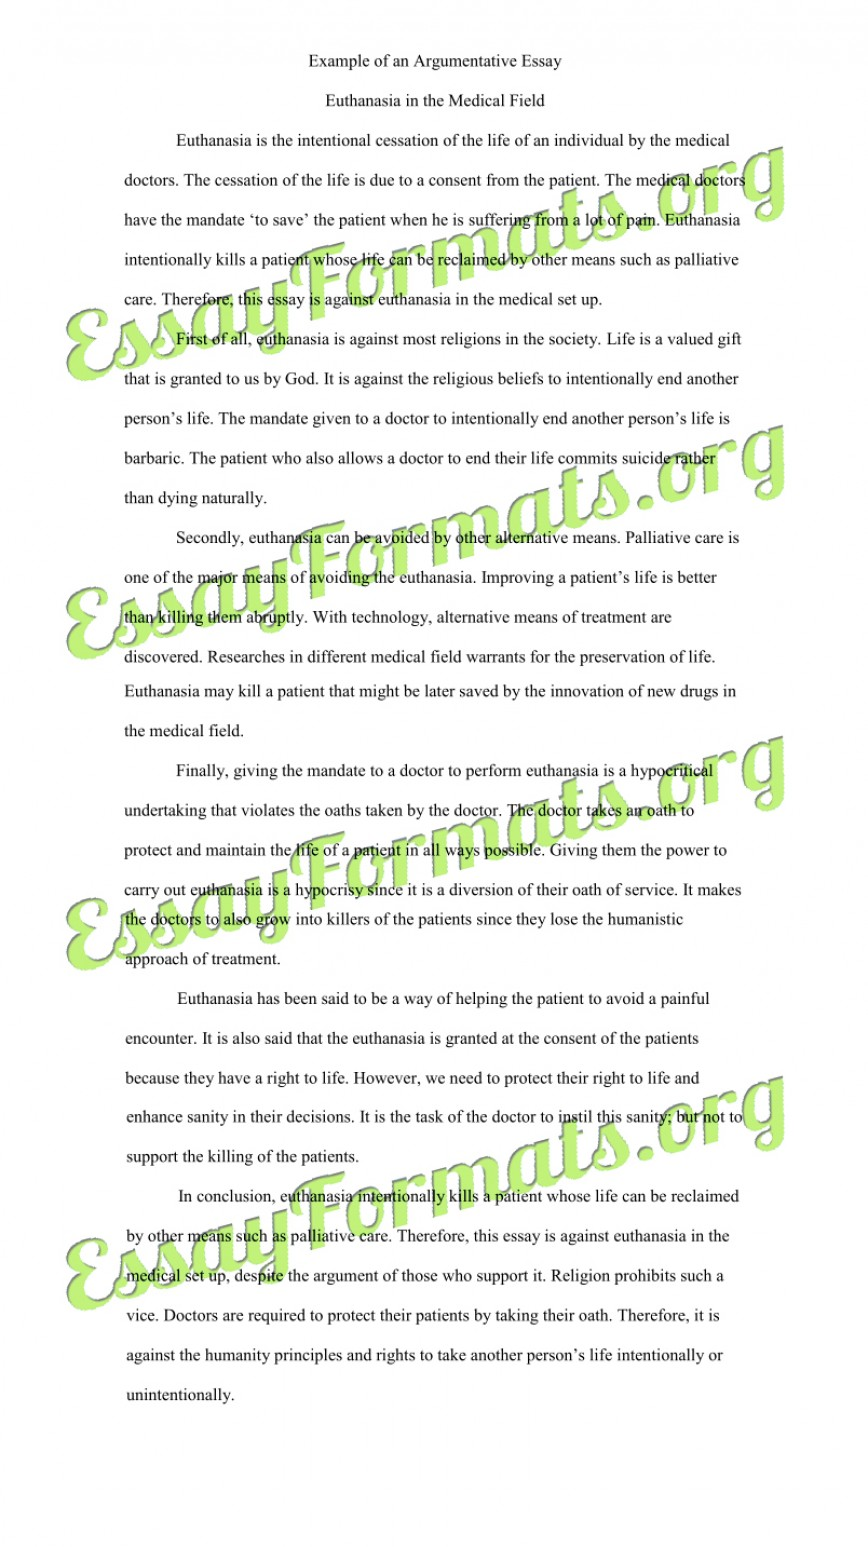 005 Essay Example Euthanasia Argumentative Counter Argument Persuasive Examples L Stirring Outline Conclusion Pdf 868